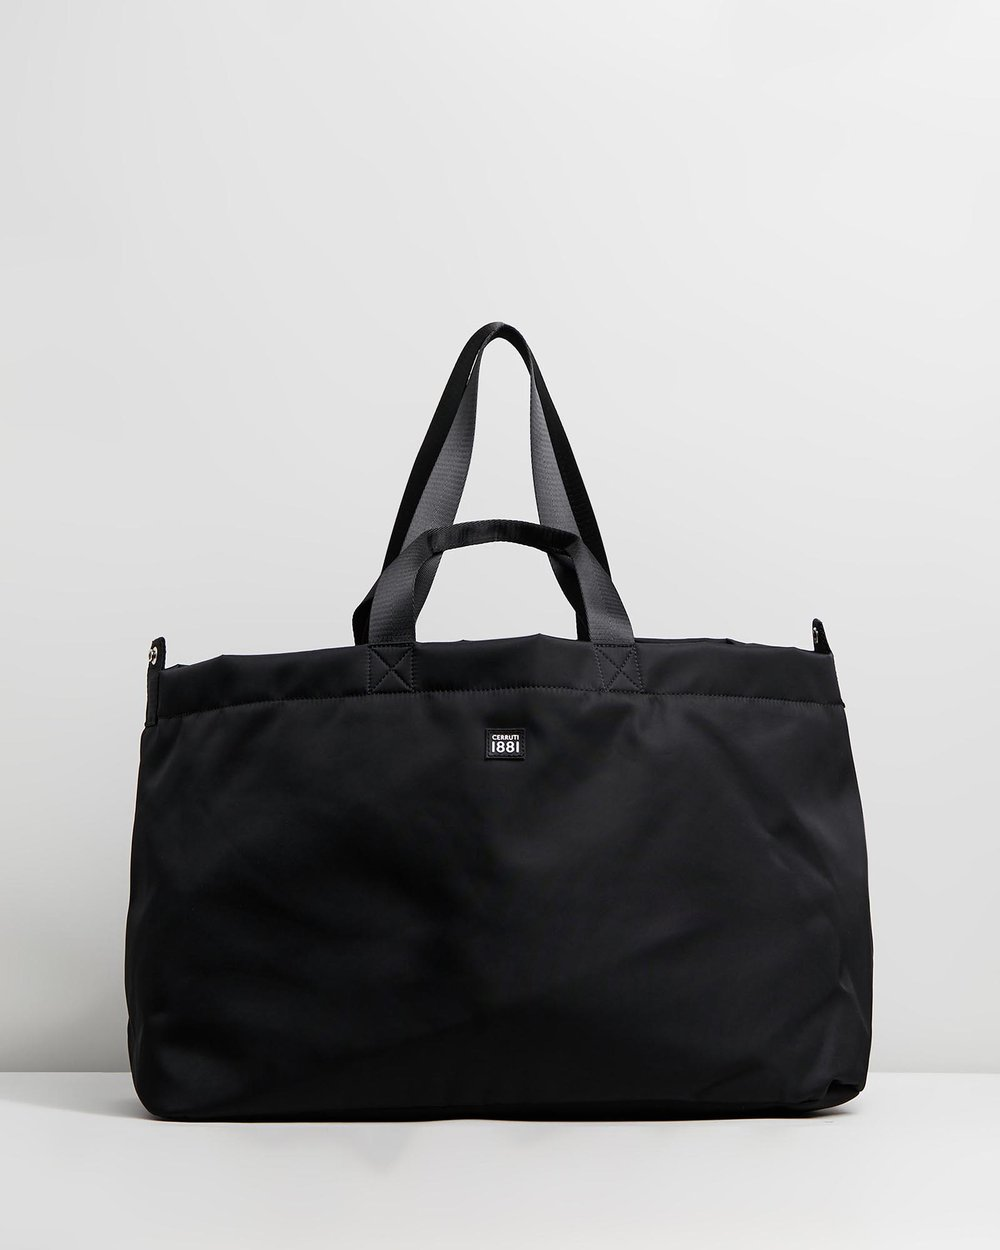 6597c6f855 Oversized Travel Bag by CERRUTI 1881 Online | THE ICONIC | Australia